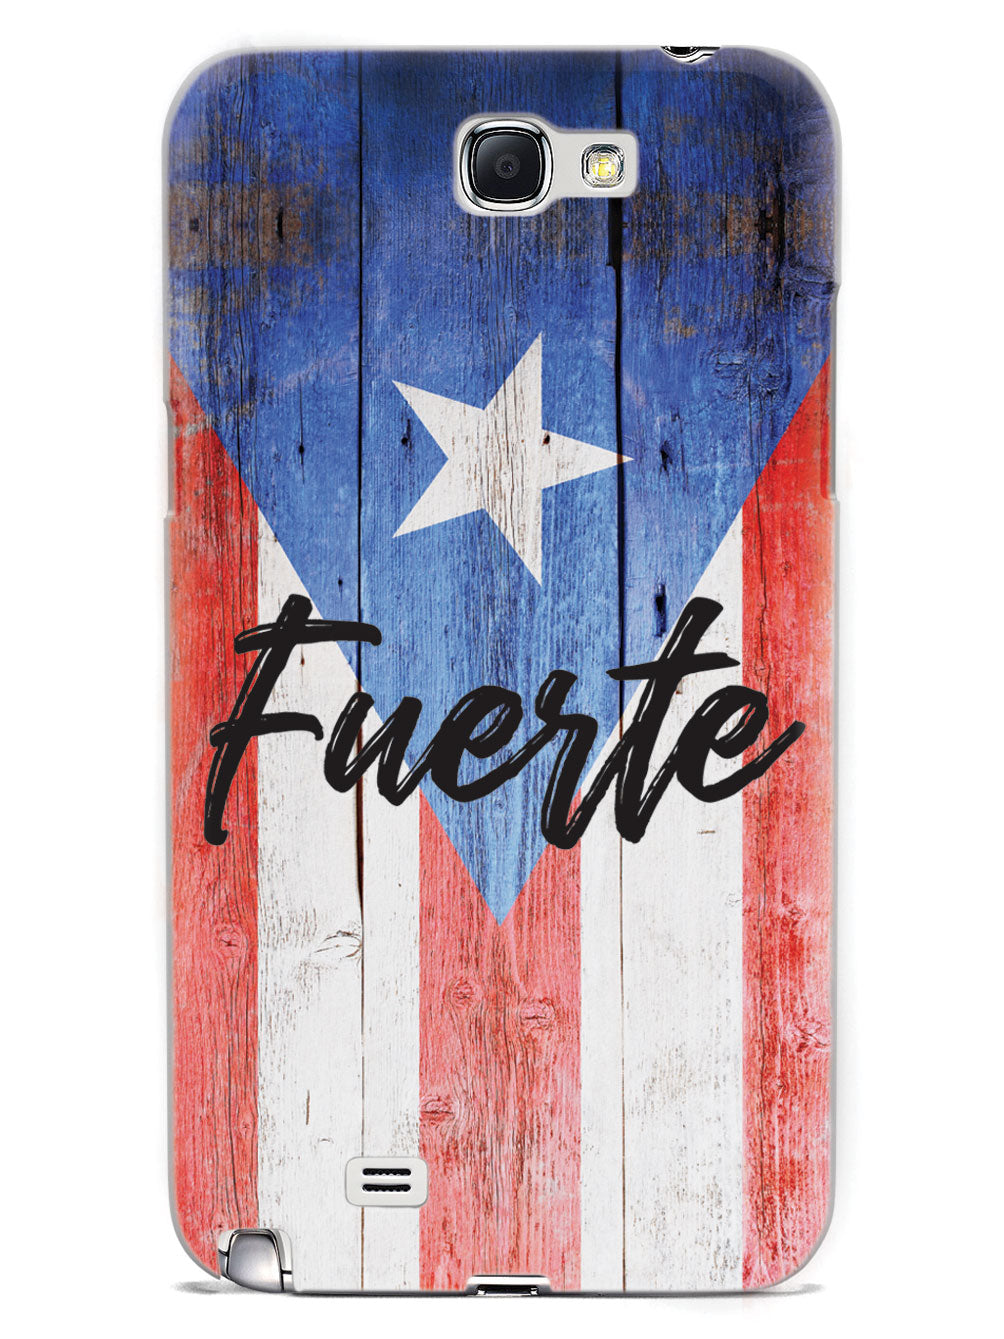 Puerto Rico Fuerte (Strong) - Textured Flag Case